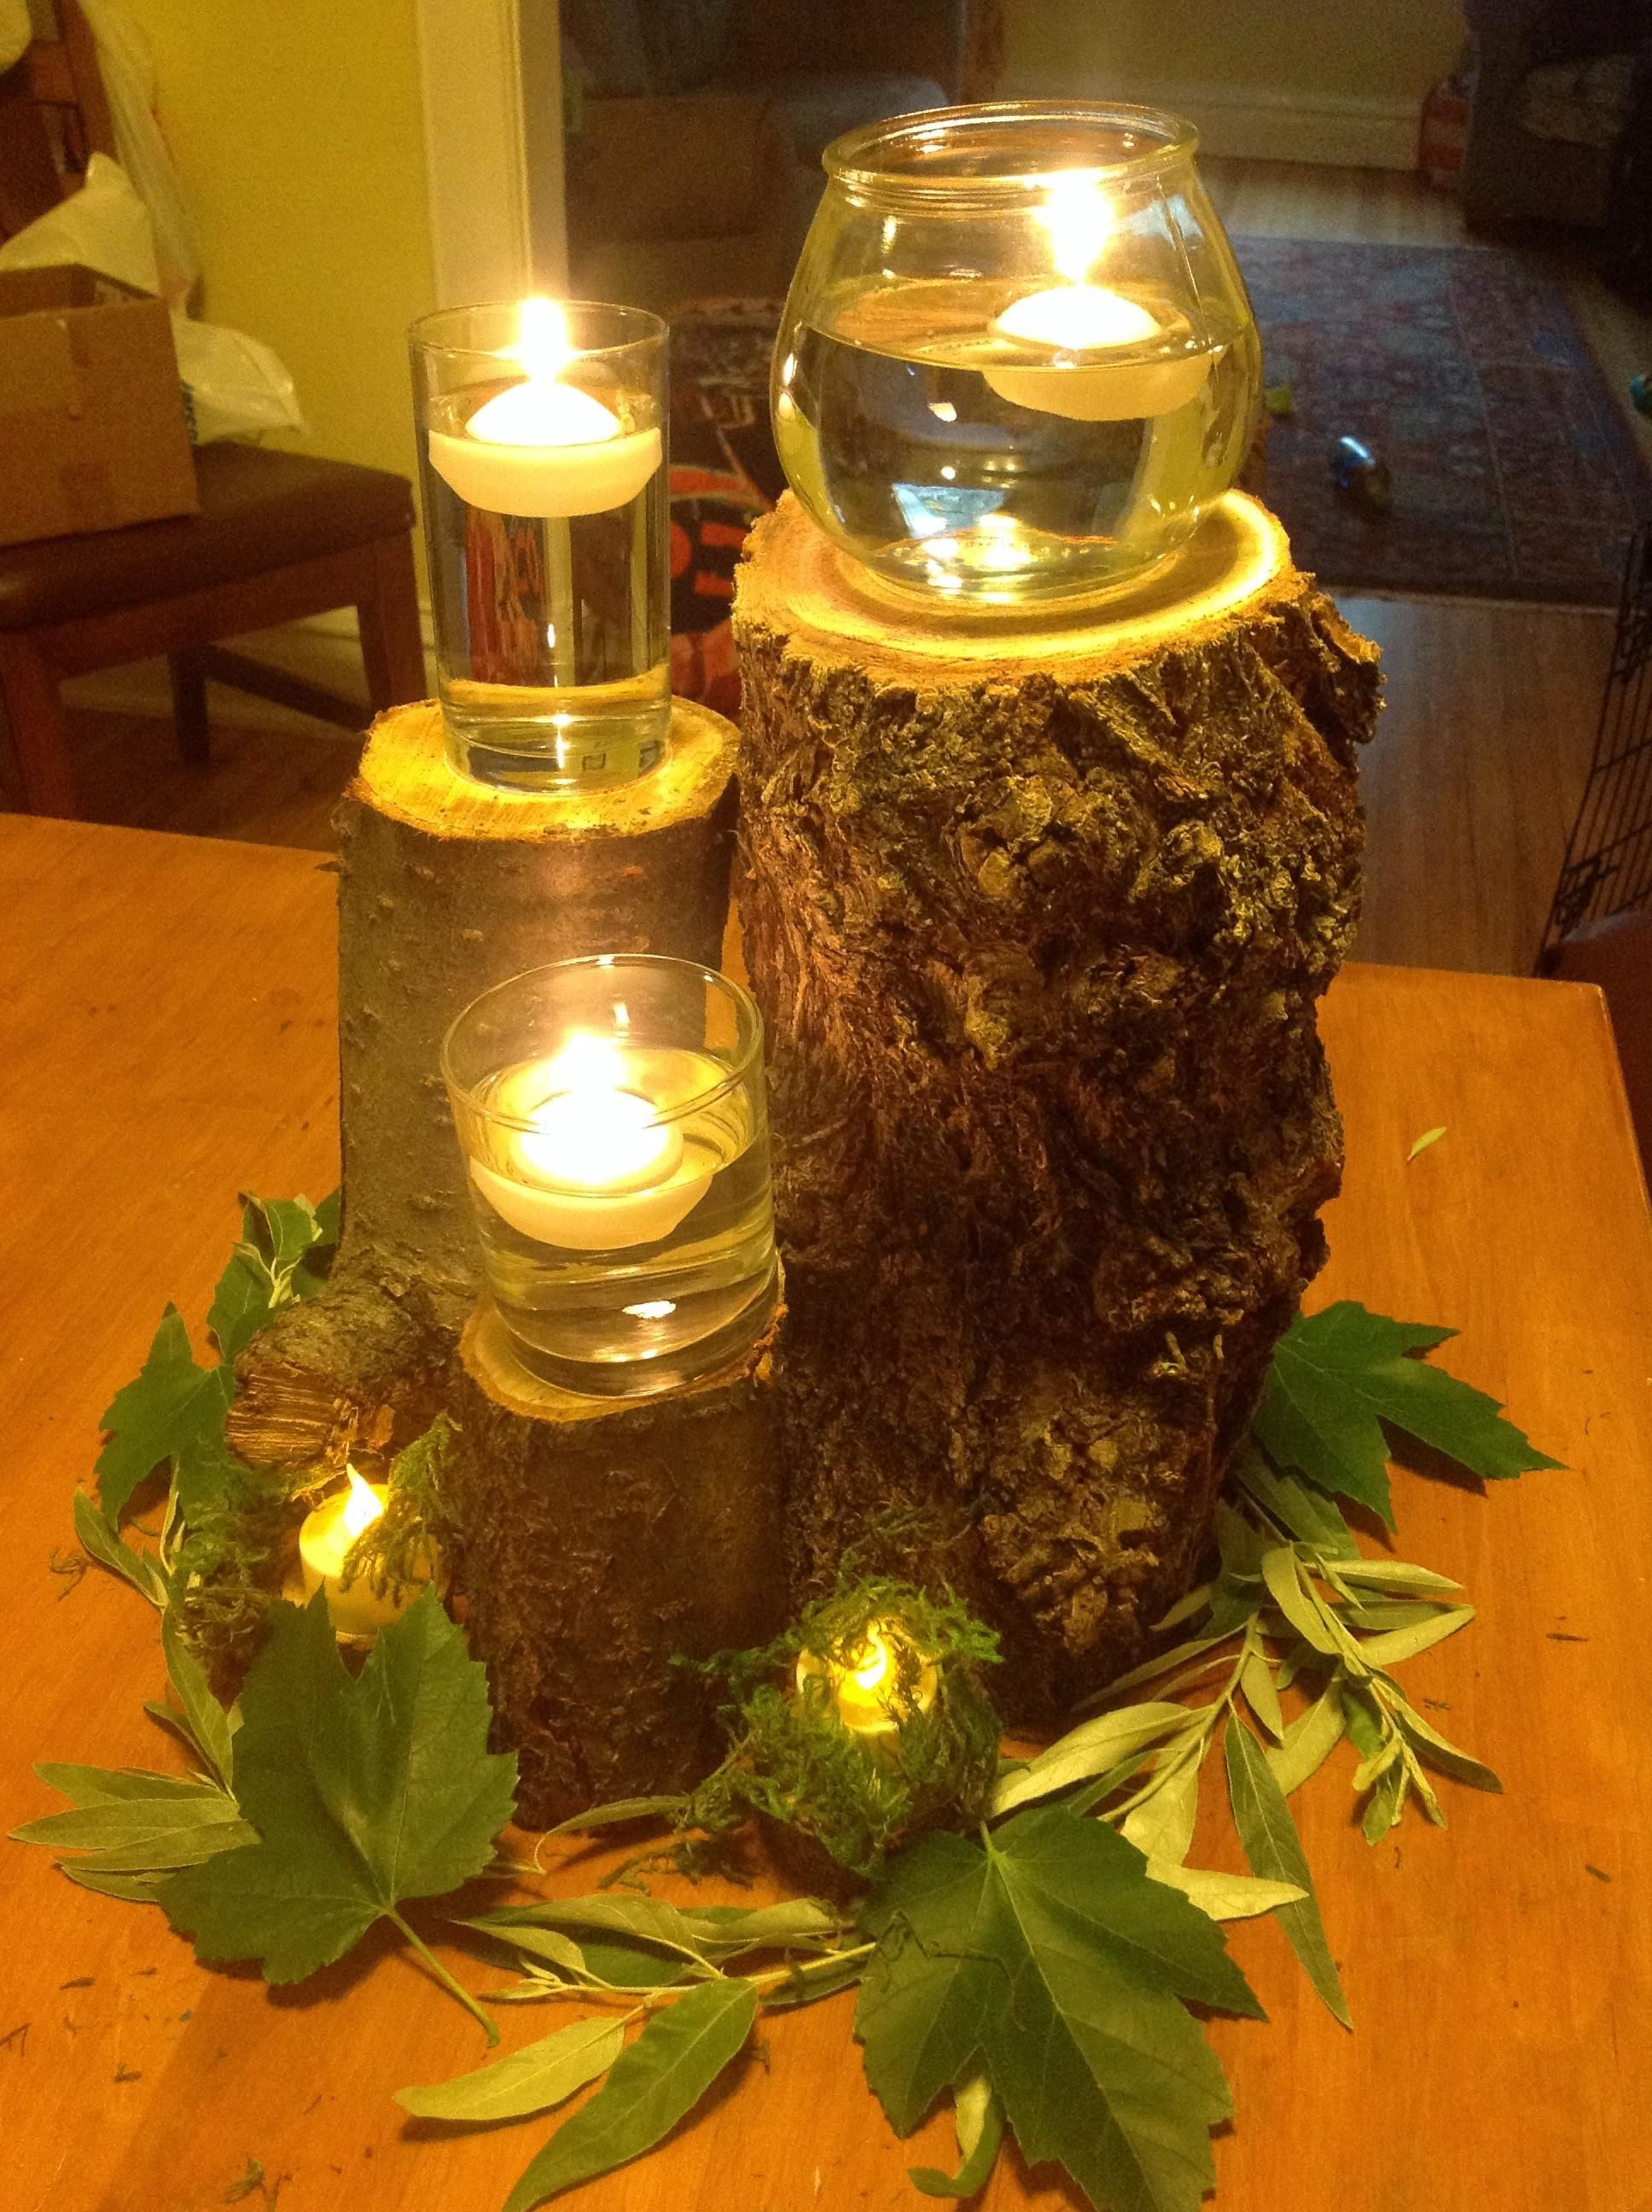 Diy Enchanted Forest Centerpieces In 2019 Enchanted Forest Centerpieces Enchanted Forest